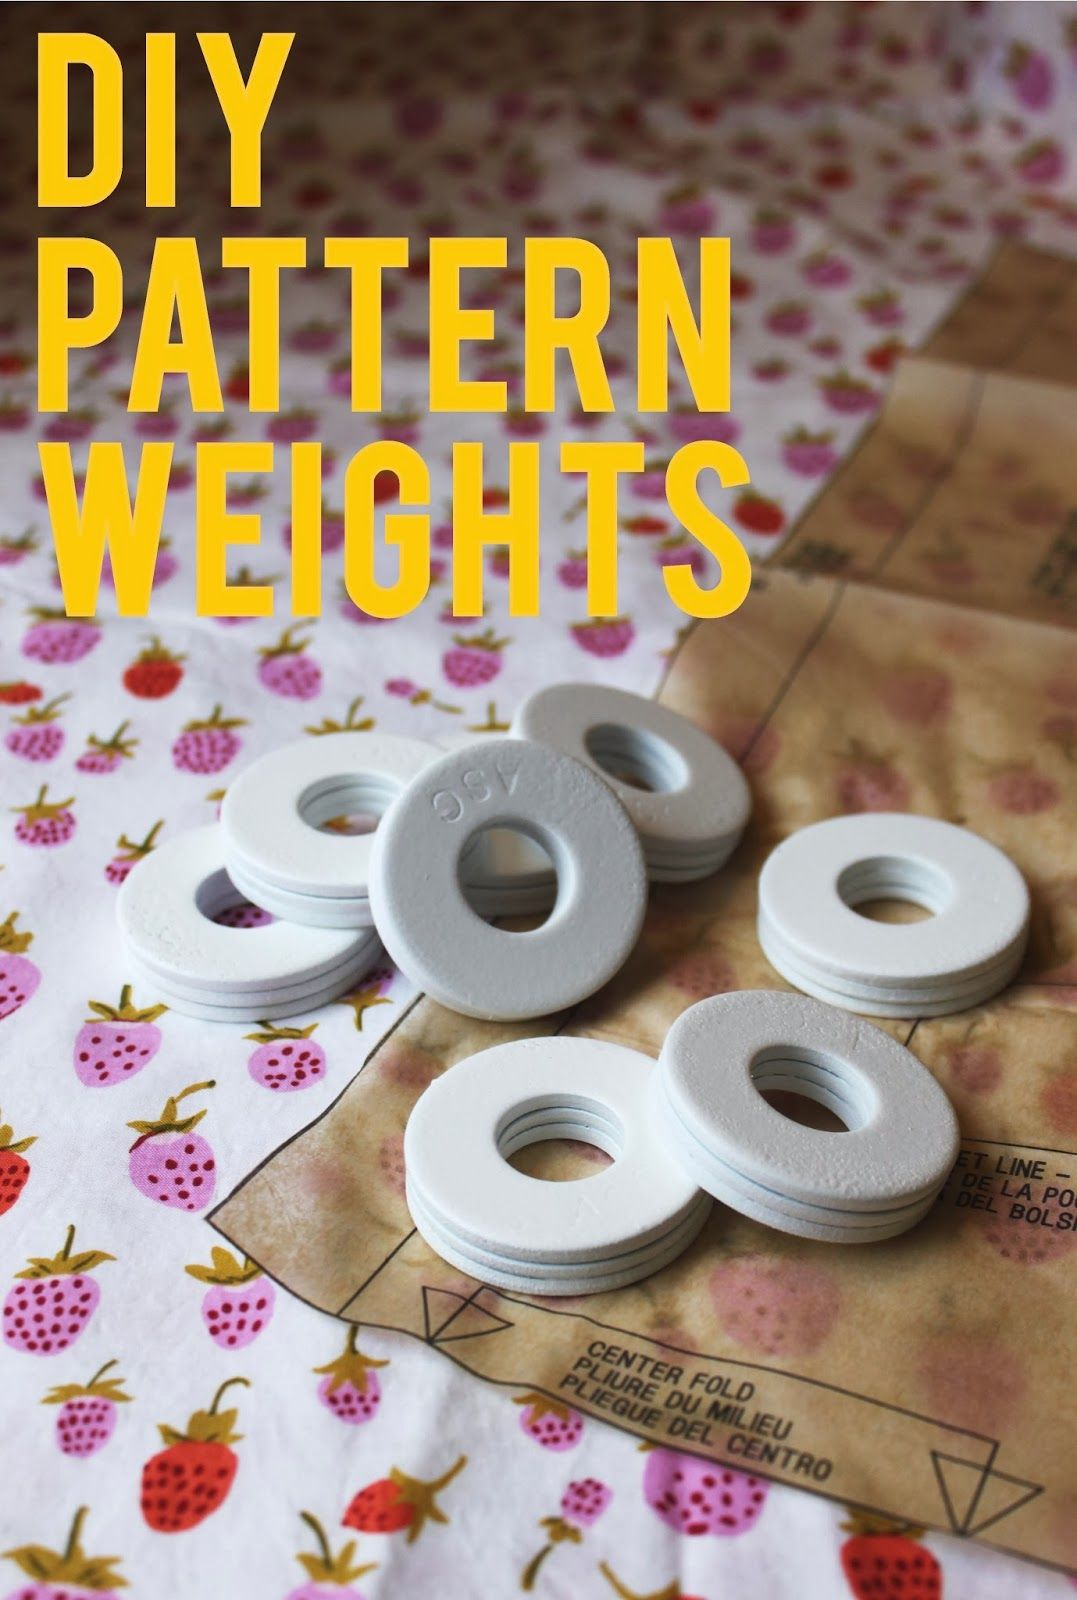 How To Plasti Dip Sewing Pattern Weights Pattern Weights Diy